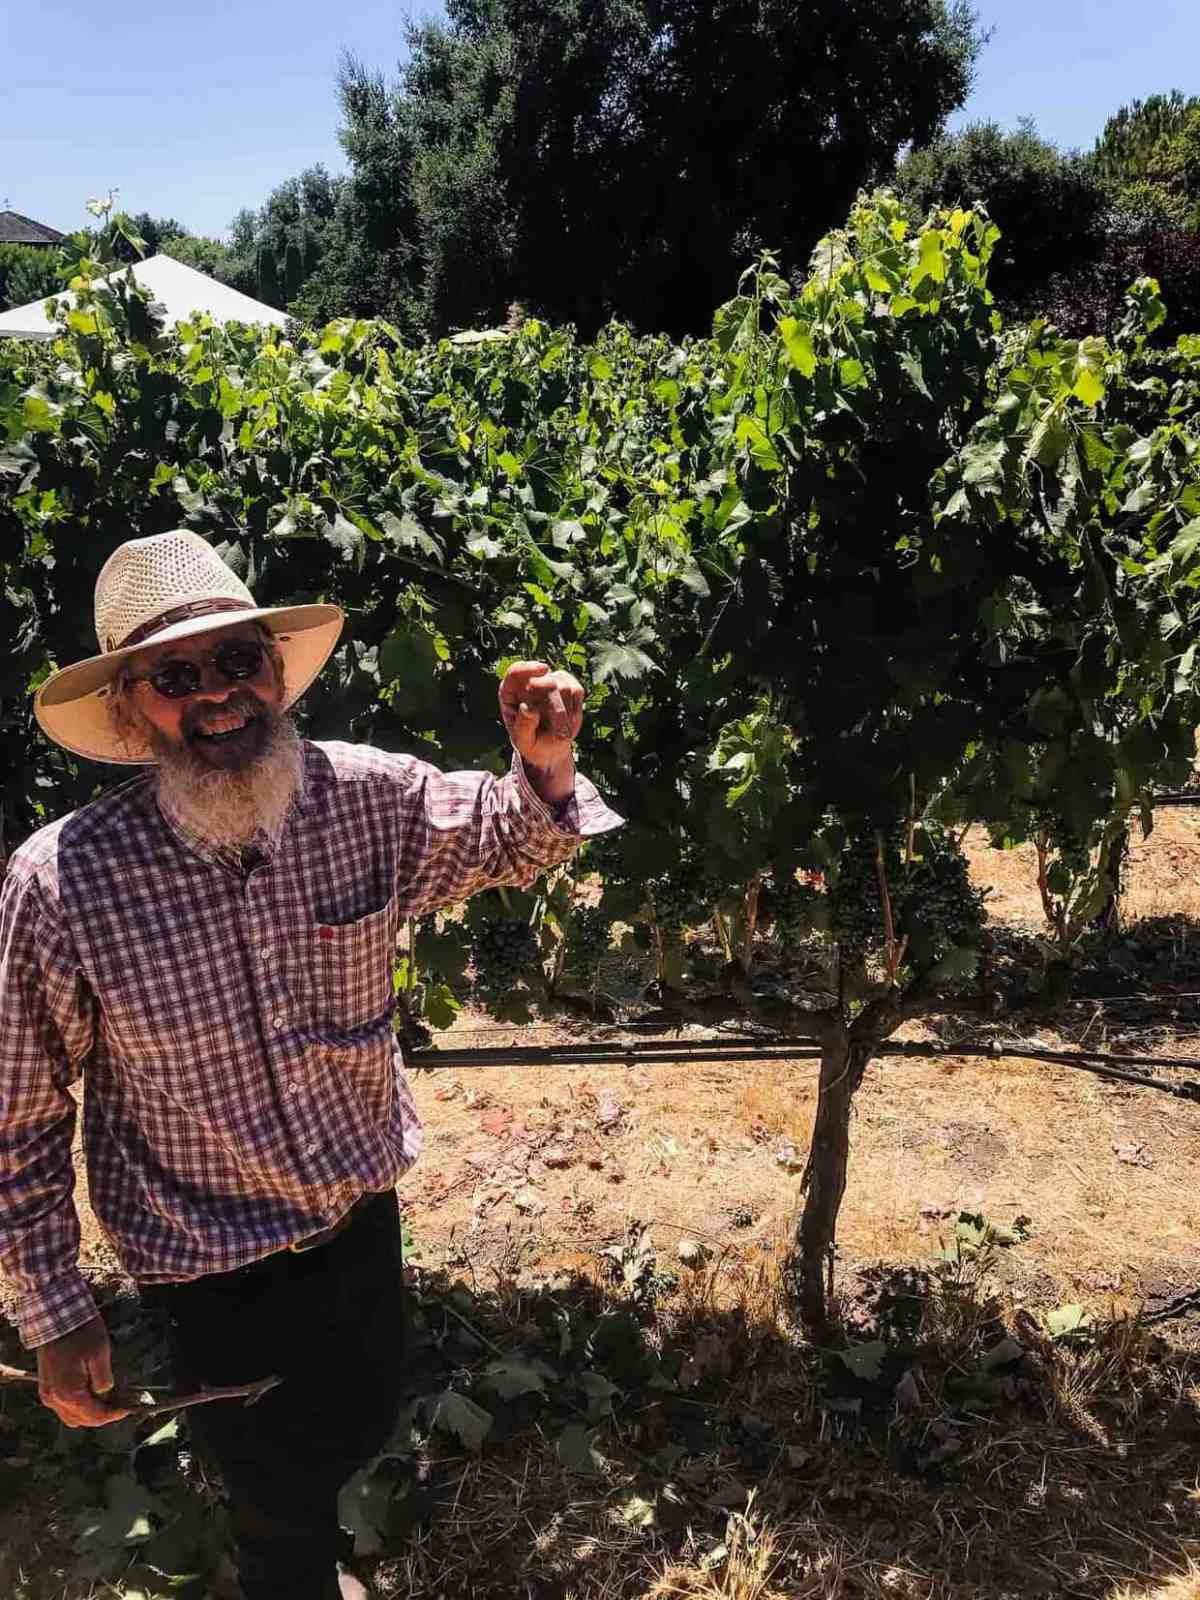 An older man in a plaid shirt and sun hat showing off grapes growing at a vineyard.